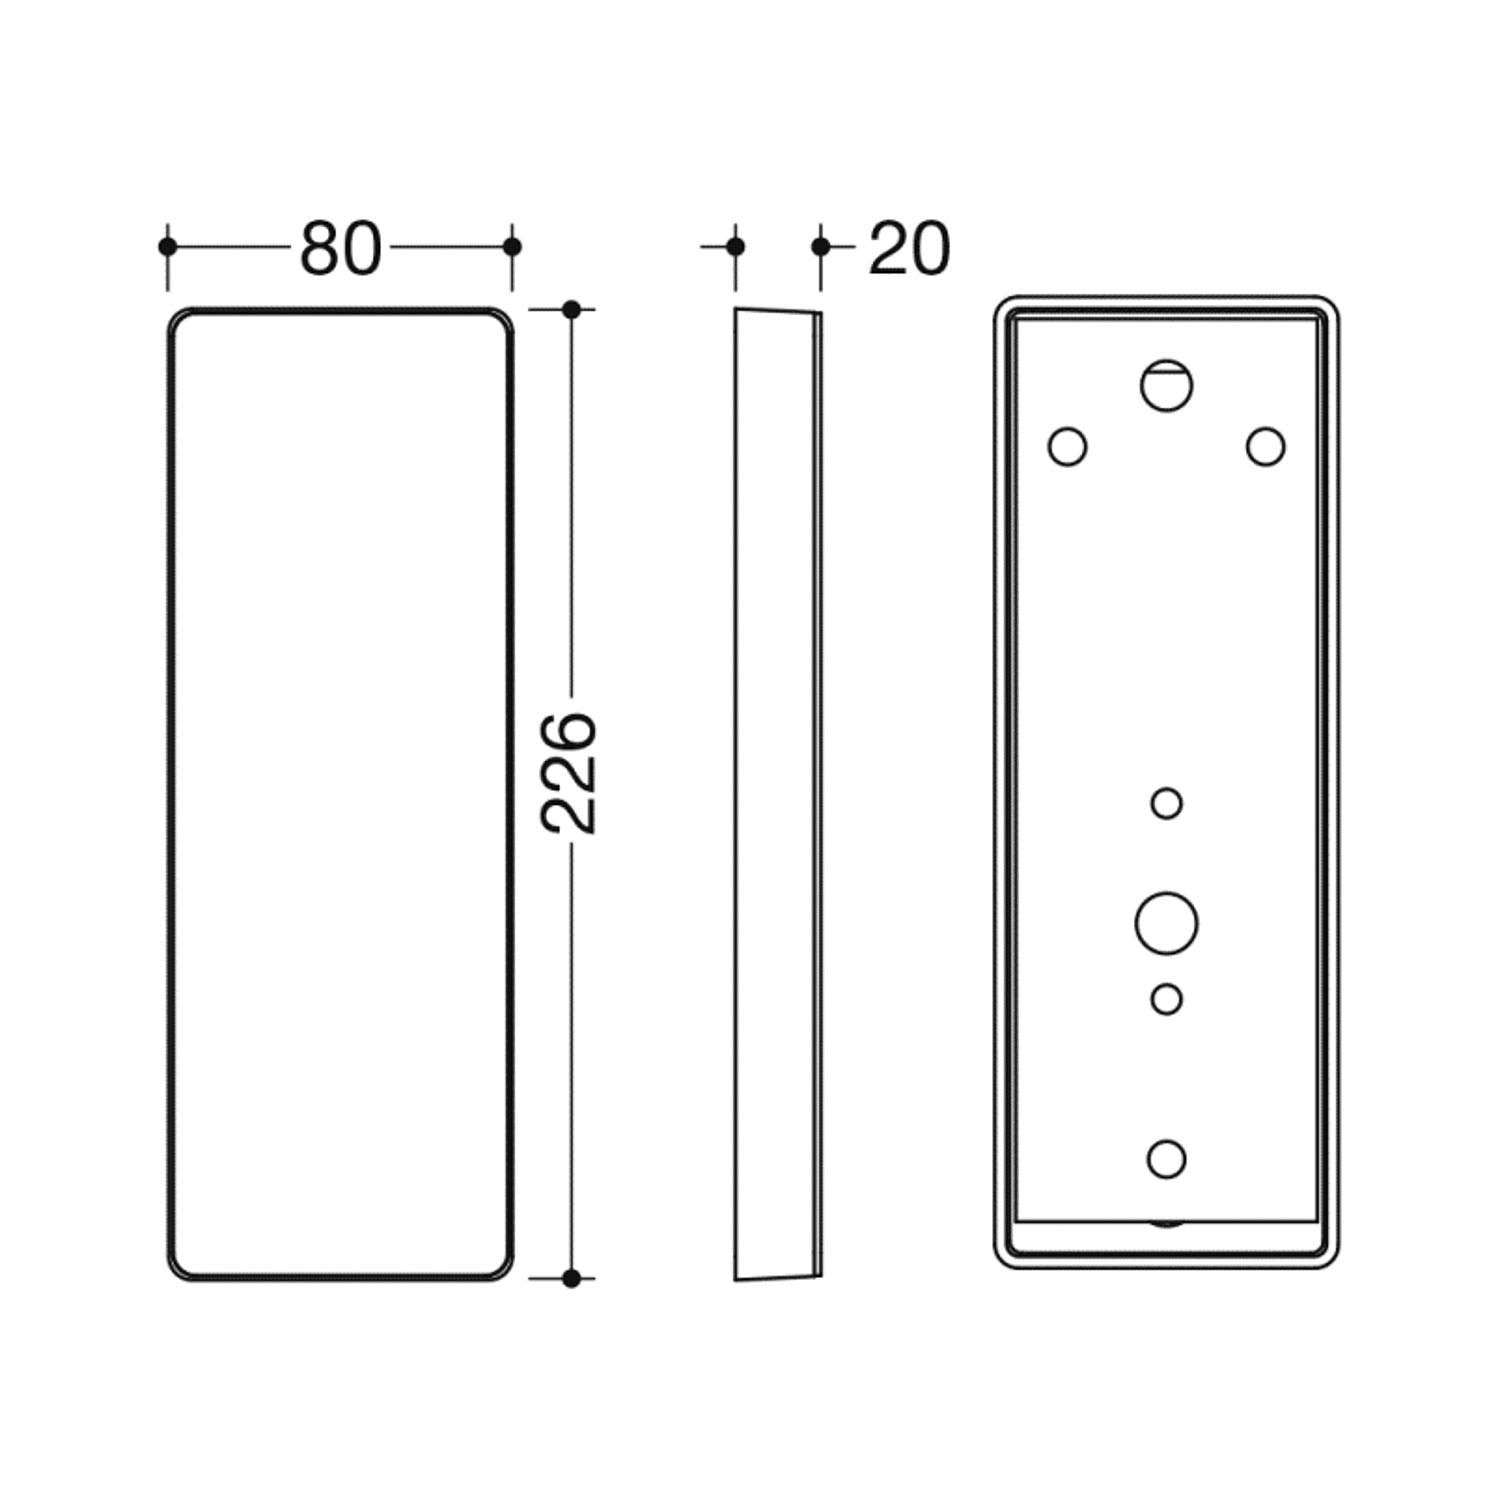 Freestyle Removable Hinged Grab Rail Mounting Plate and Cover with a white finish dimensional drawing